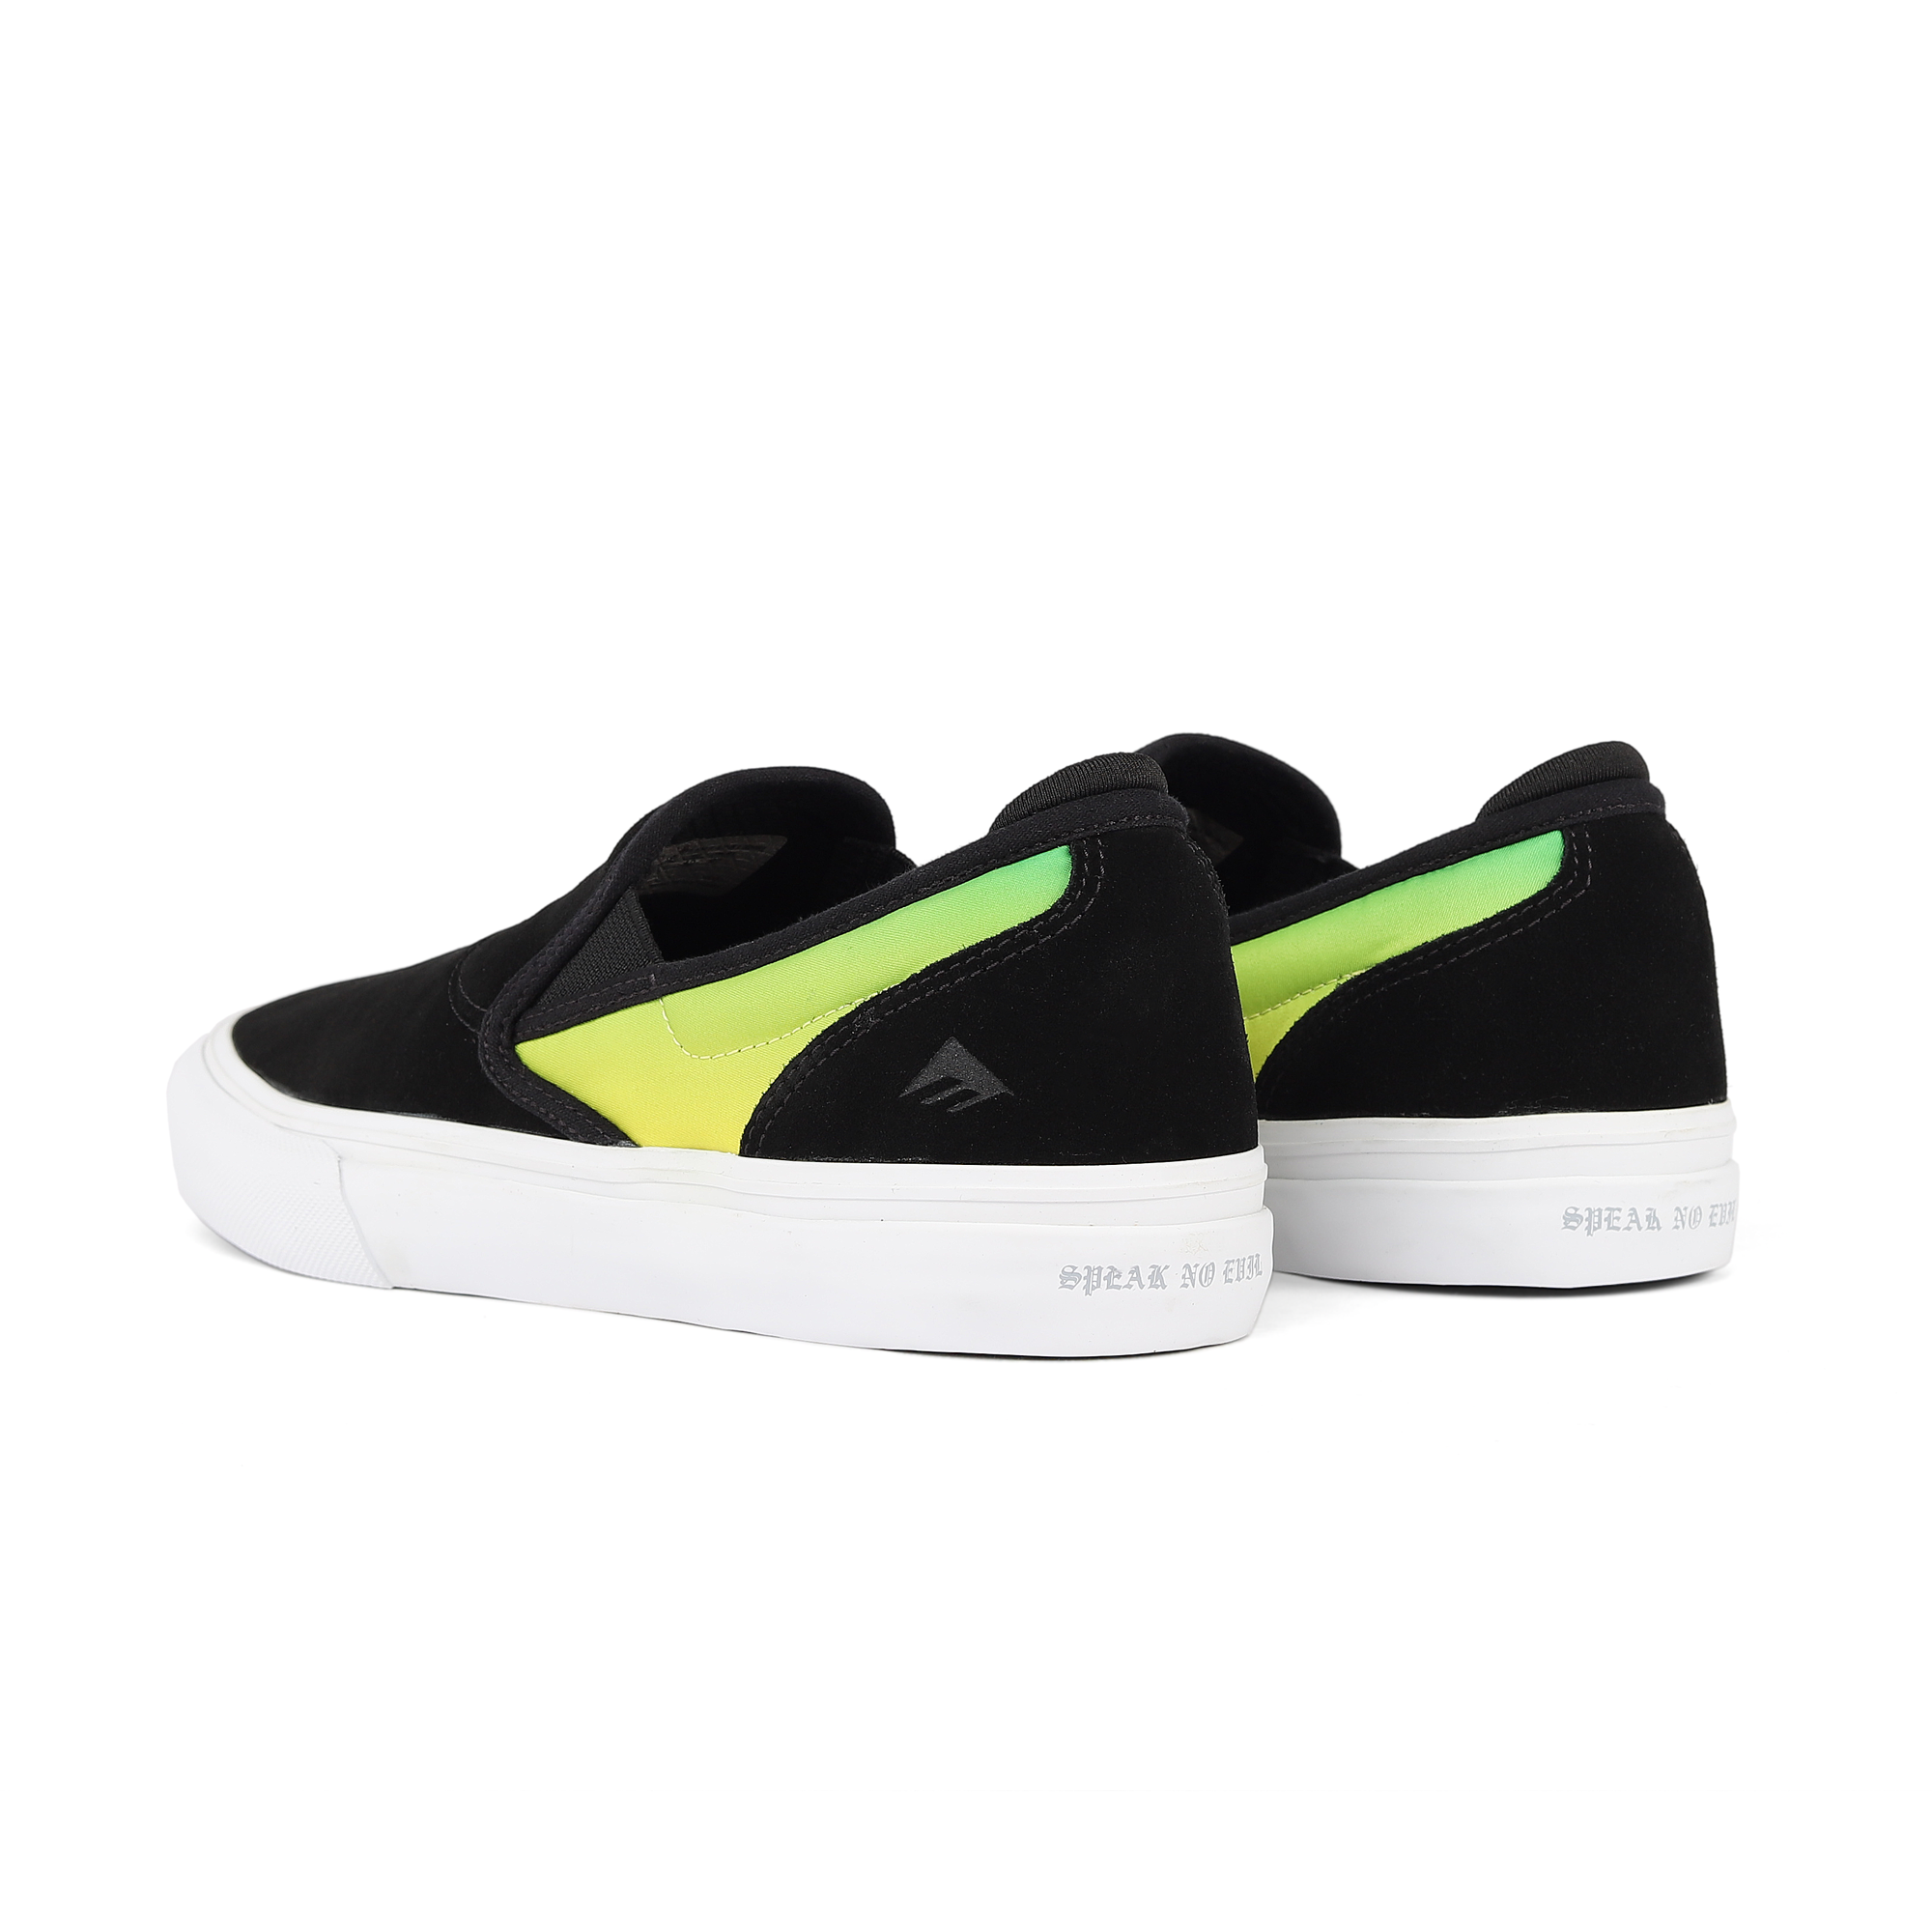 Emerica Wino G6 x Creature Slip Product Photo #3